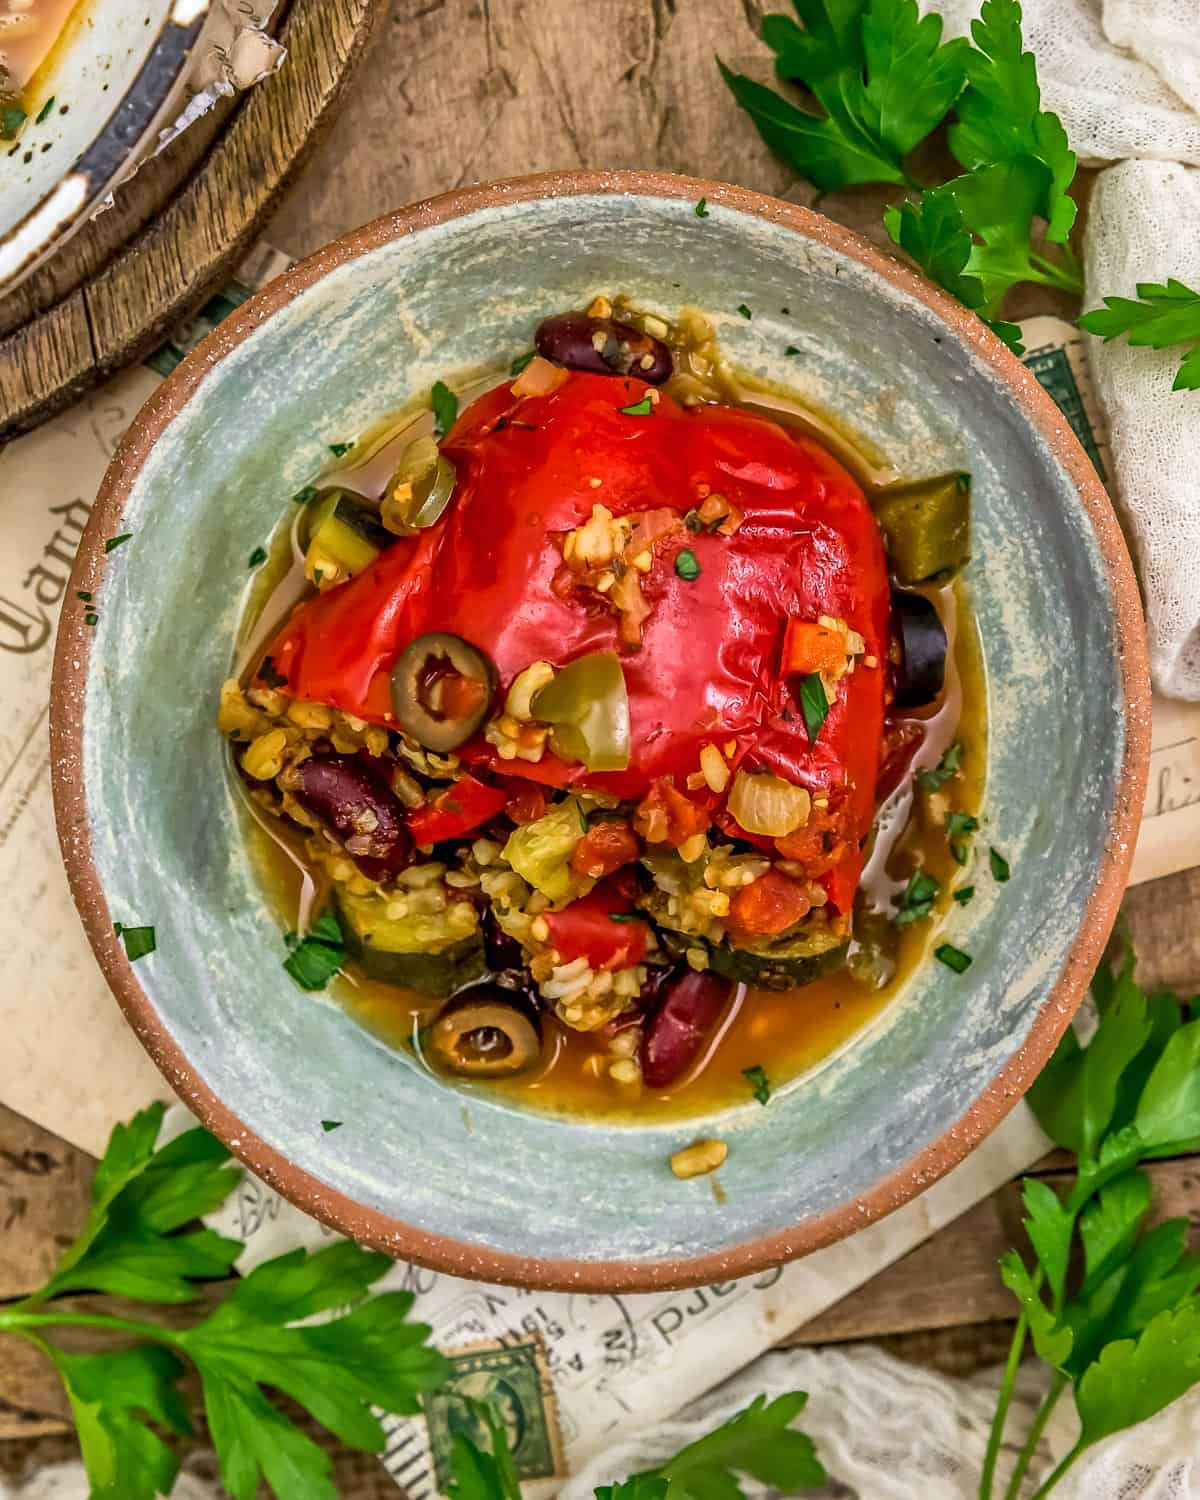 Plate of Vegan Pizza Stuffed Peppers